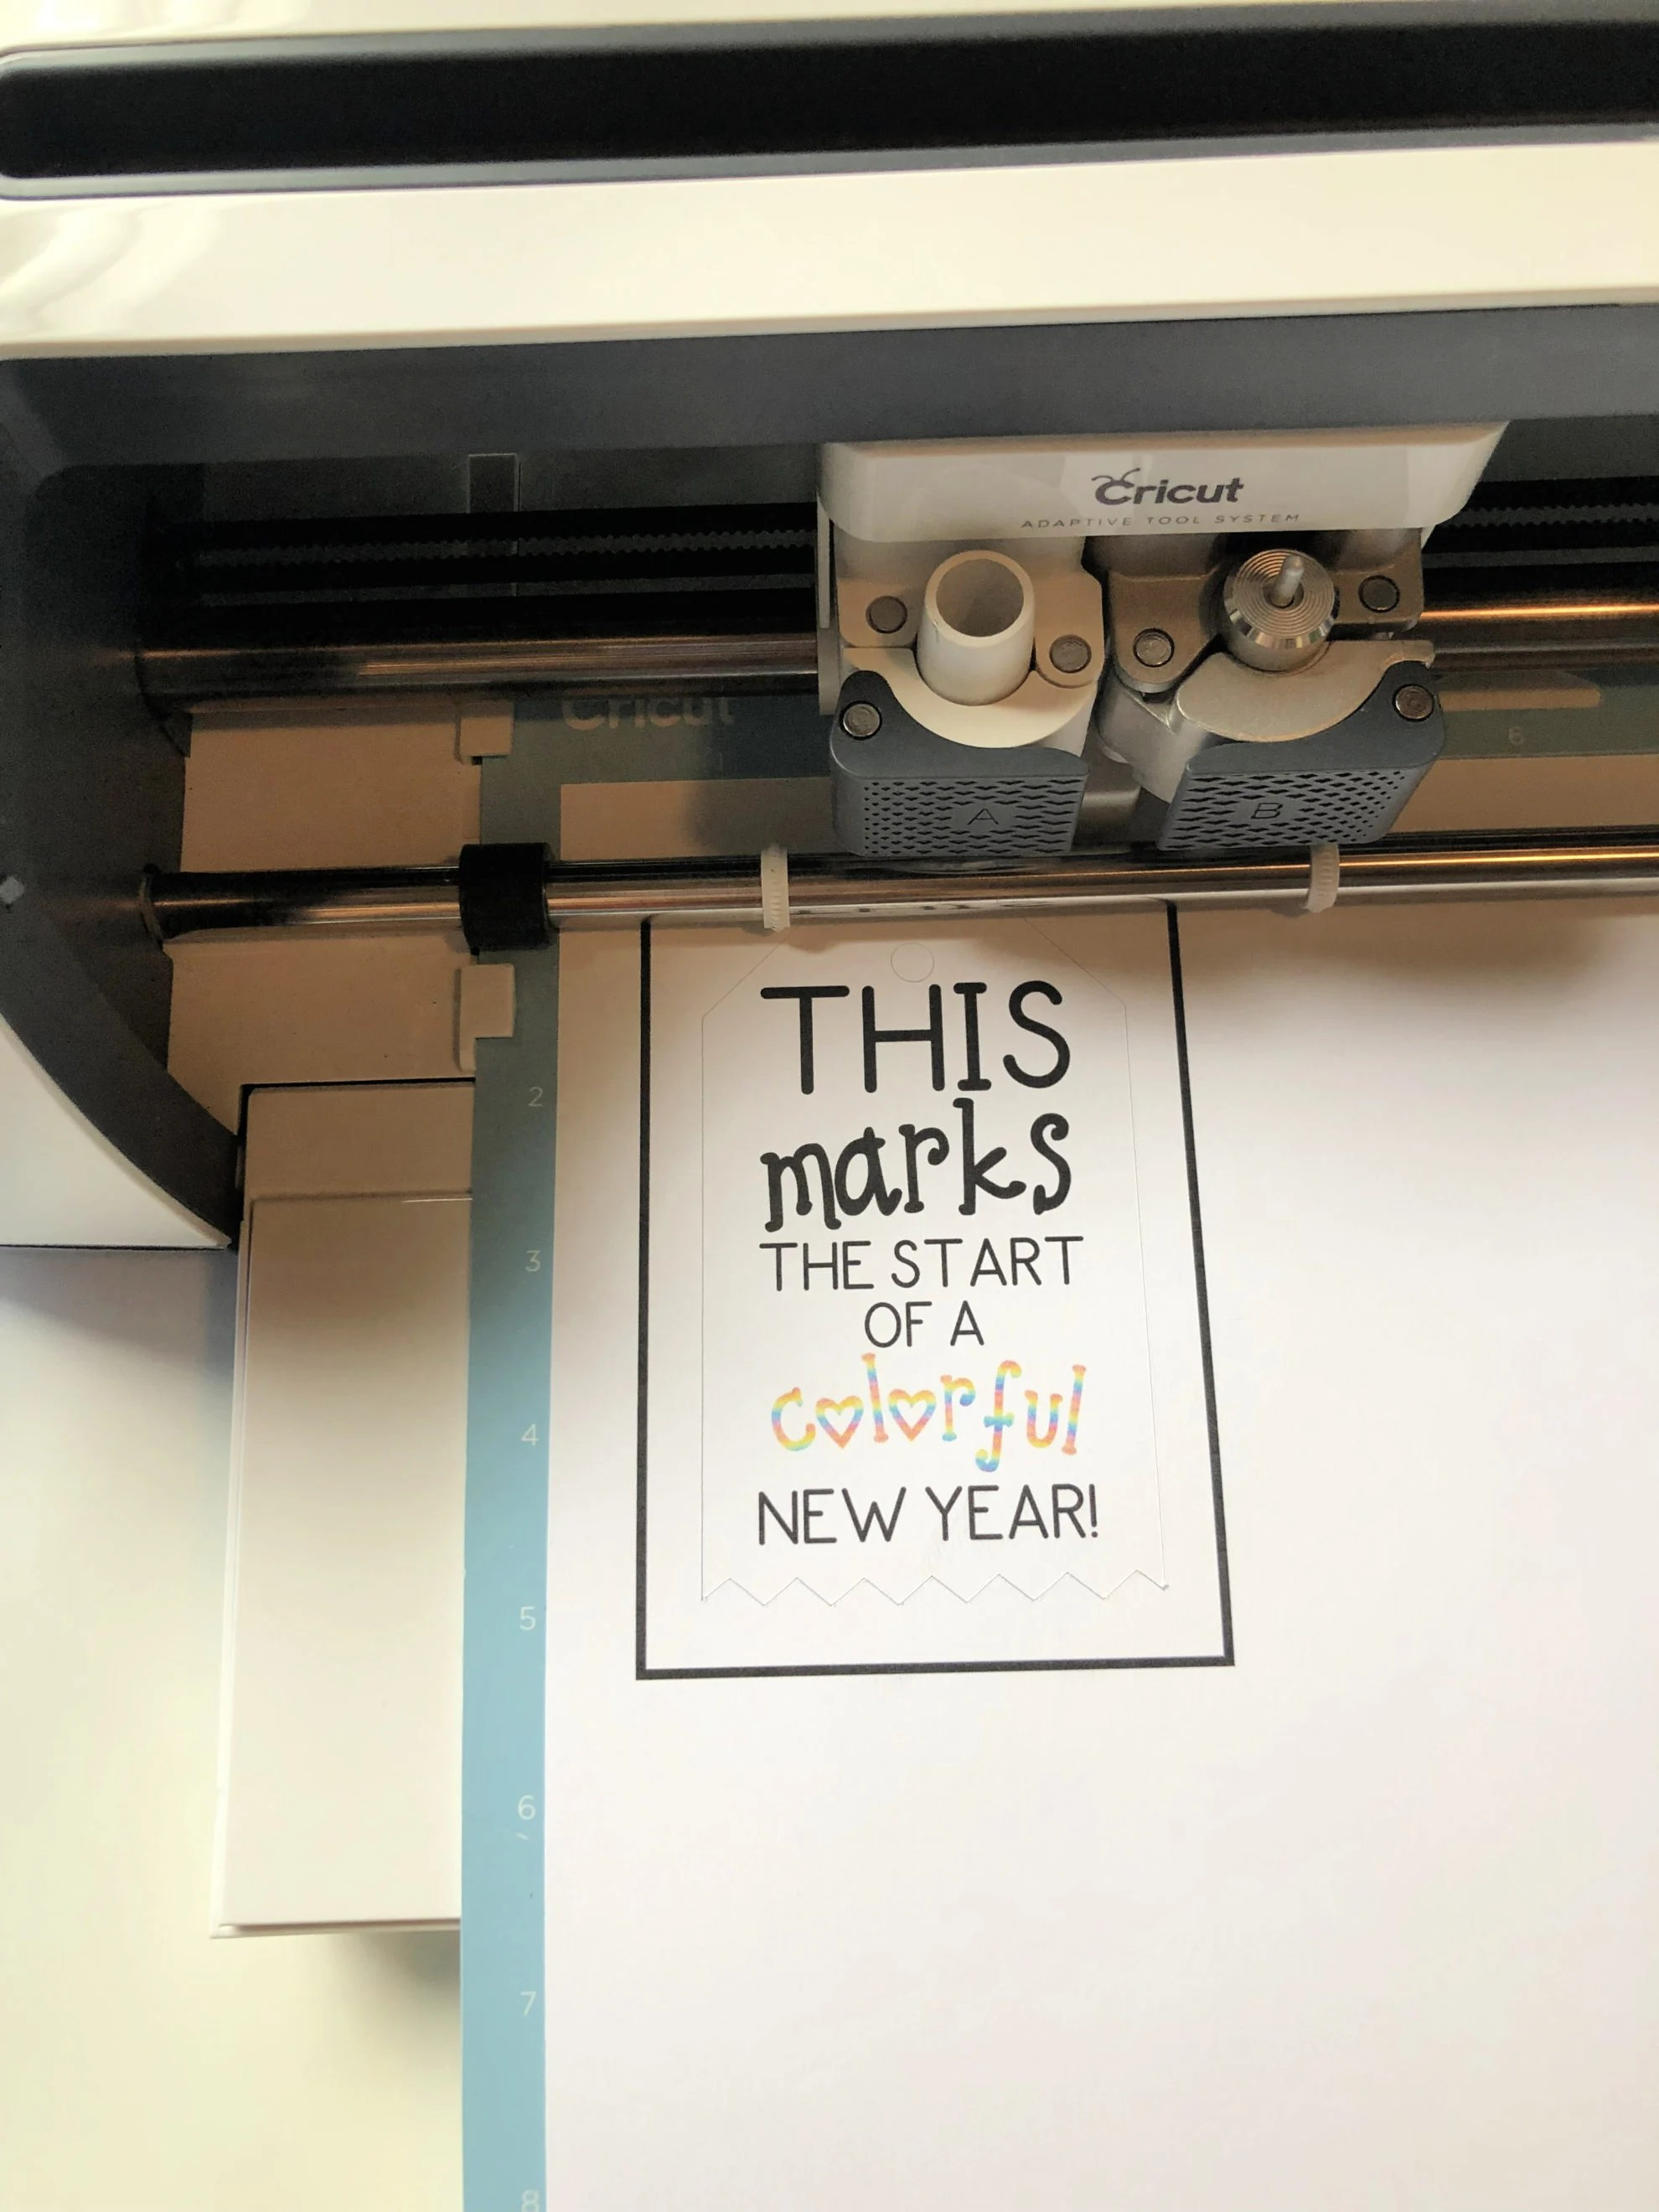 Top view of a Cricut Maker Machine cutting out a paper on a blue mat.